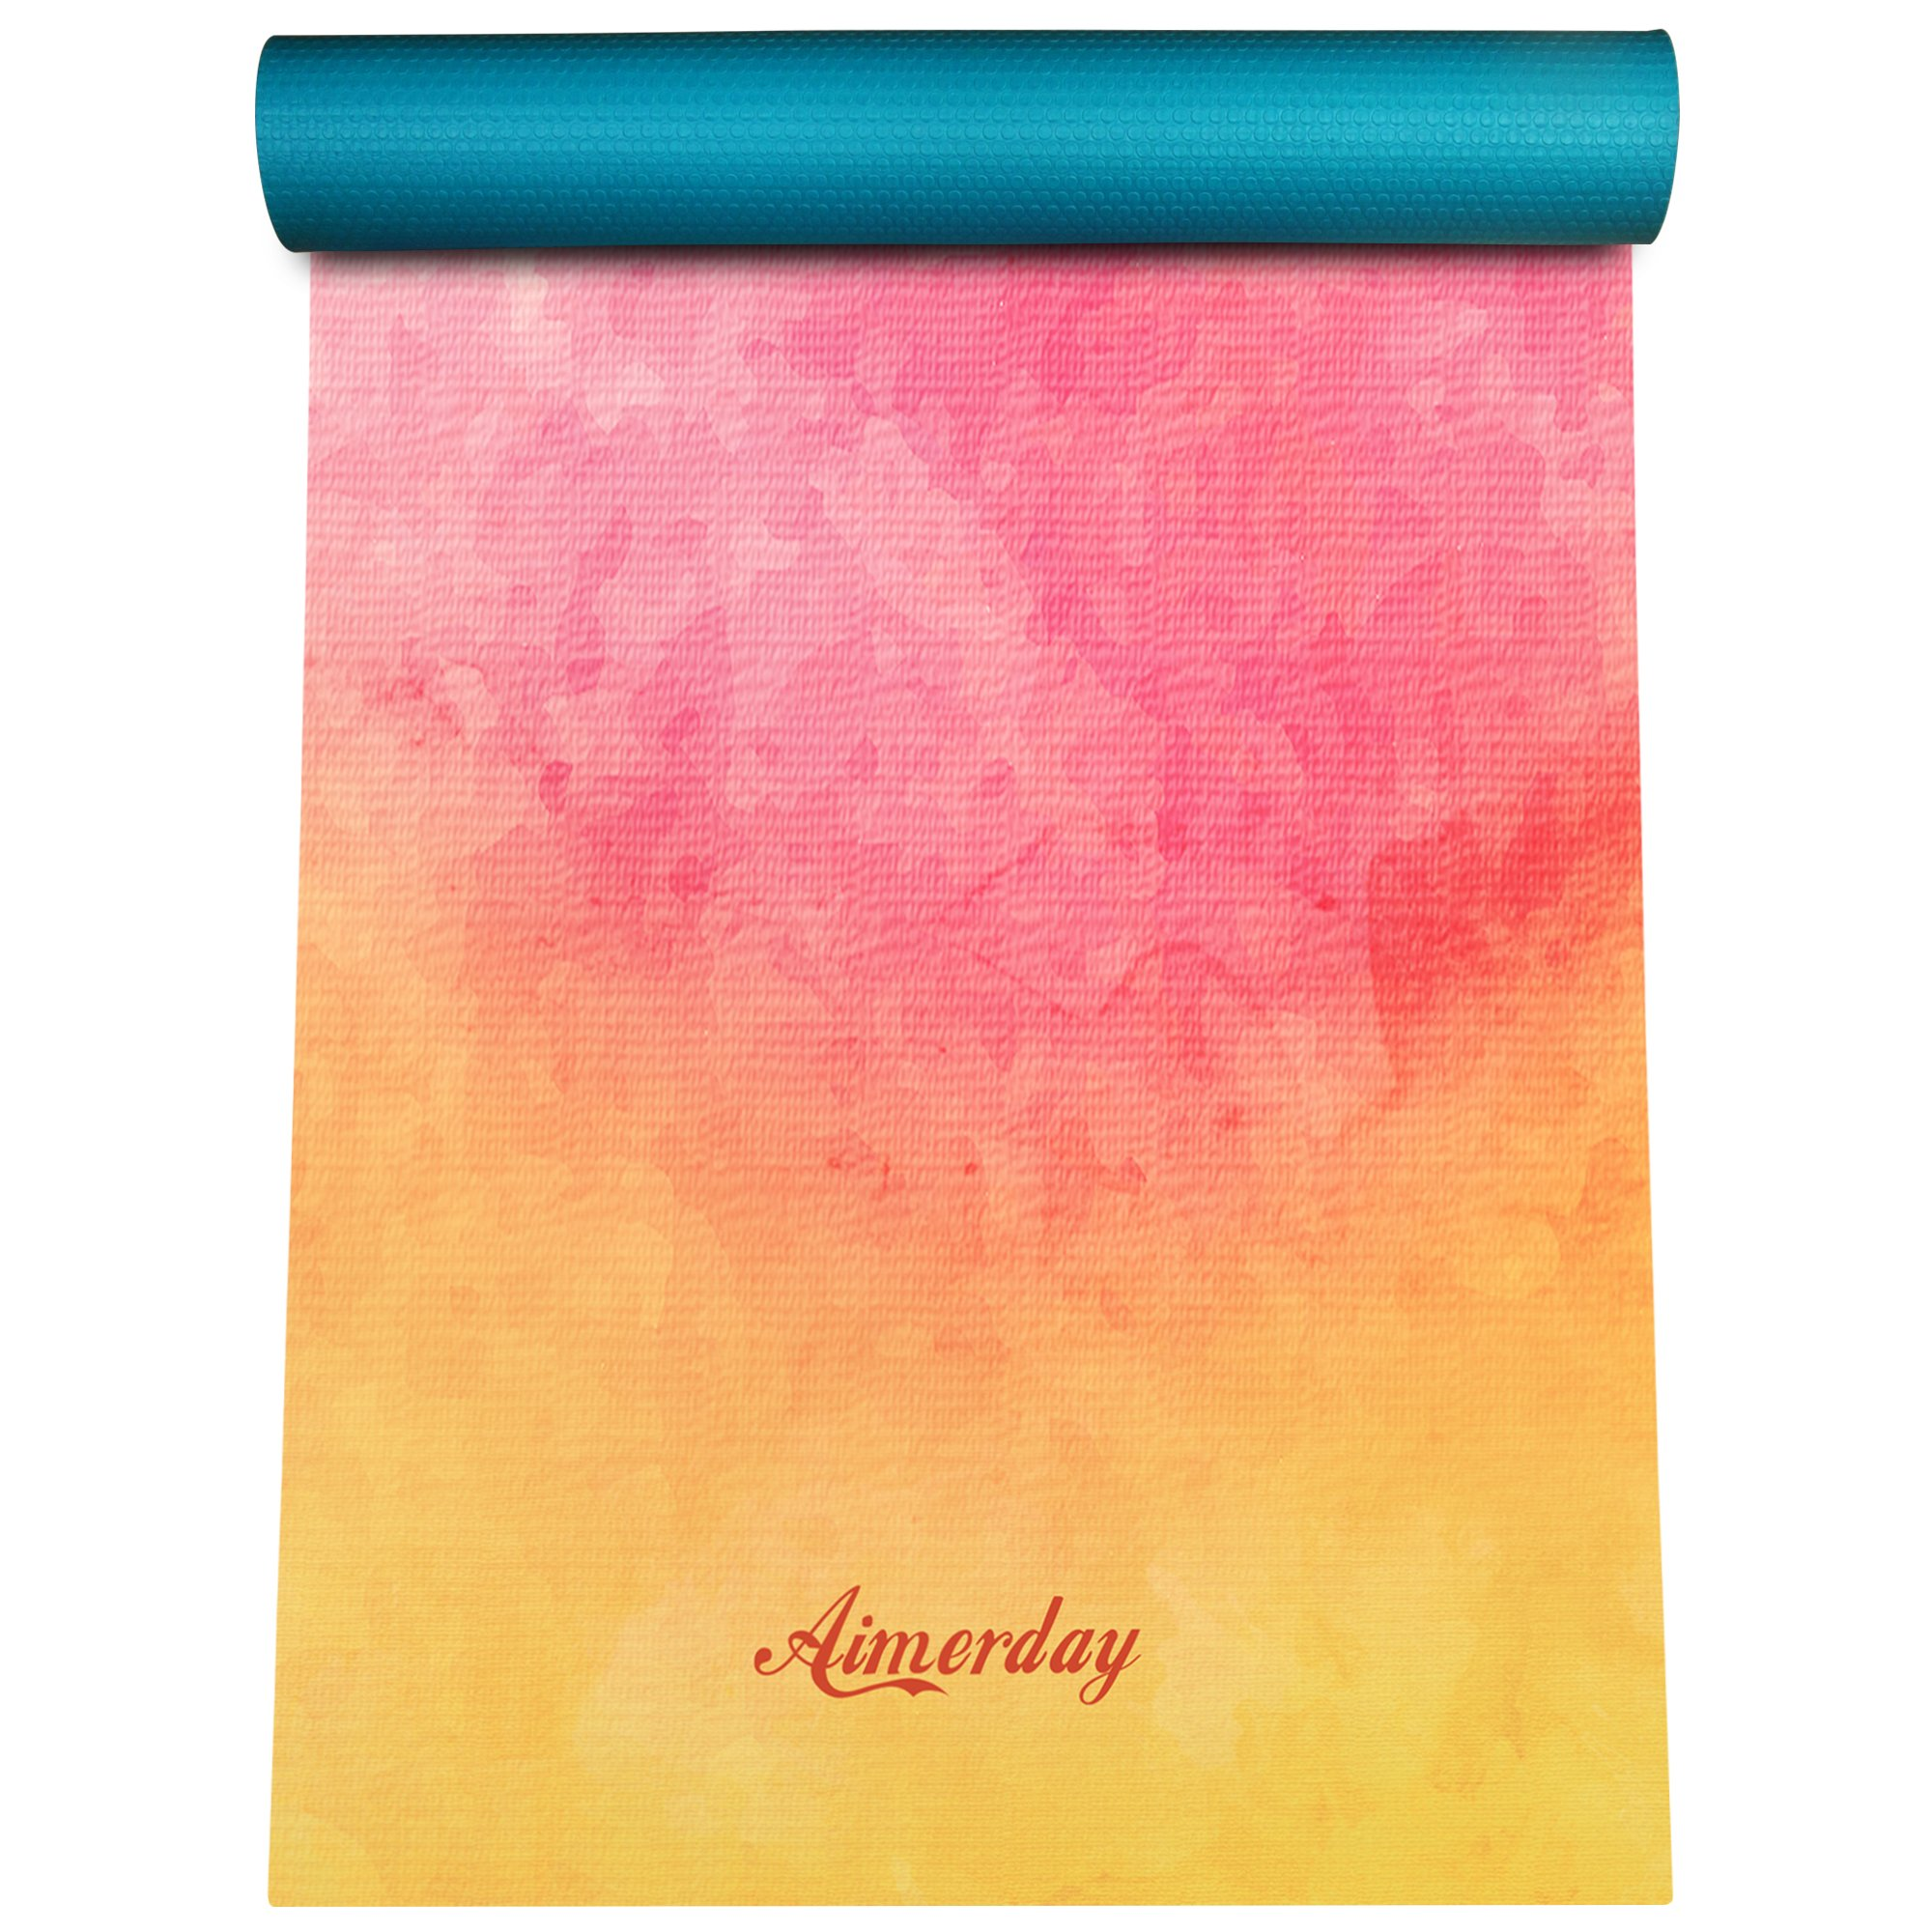 AIMERDAY Premium Print Yoga Mat Extra Thick 1/4'' Non Slip Eco Friendly High Density Anti-Tear 72 x 24 Inch Fitness Exercise Mat Floor Pilates Workout Mat for Yoga with Carrying Strap & Bag 6mm